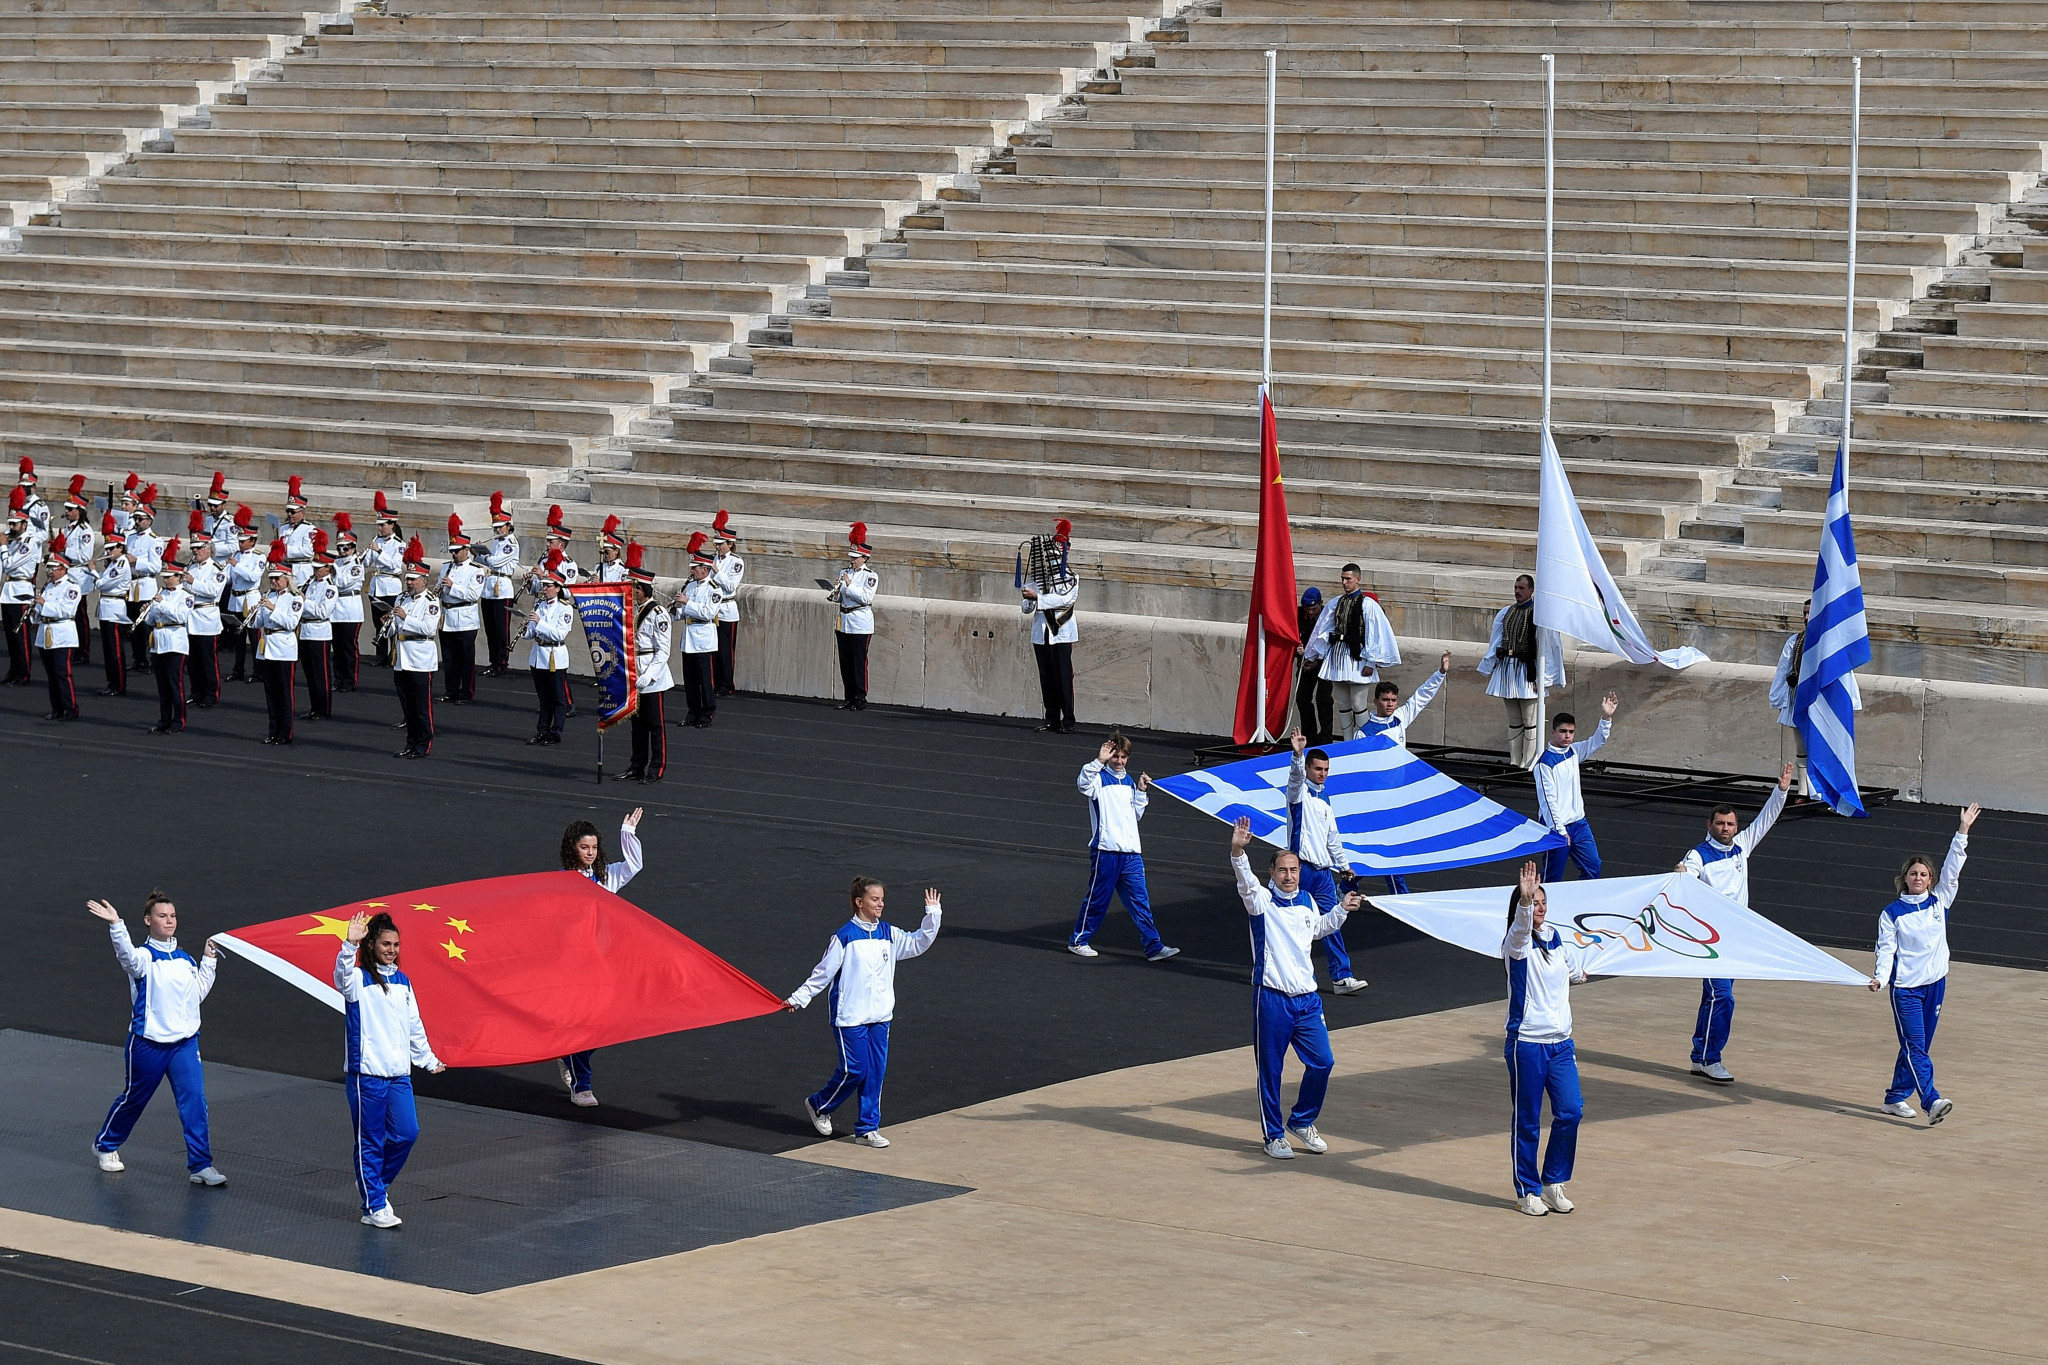 The Olympic flag, and the flags of Greece and China are carried during the Olympic Flame Handover Ceremony ©Getty Images